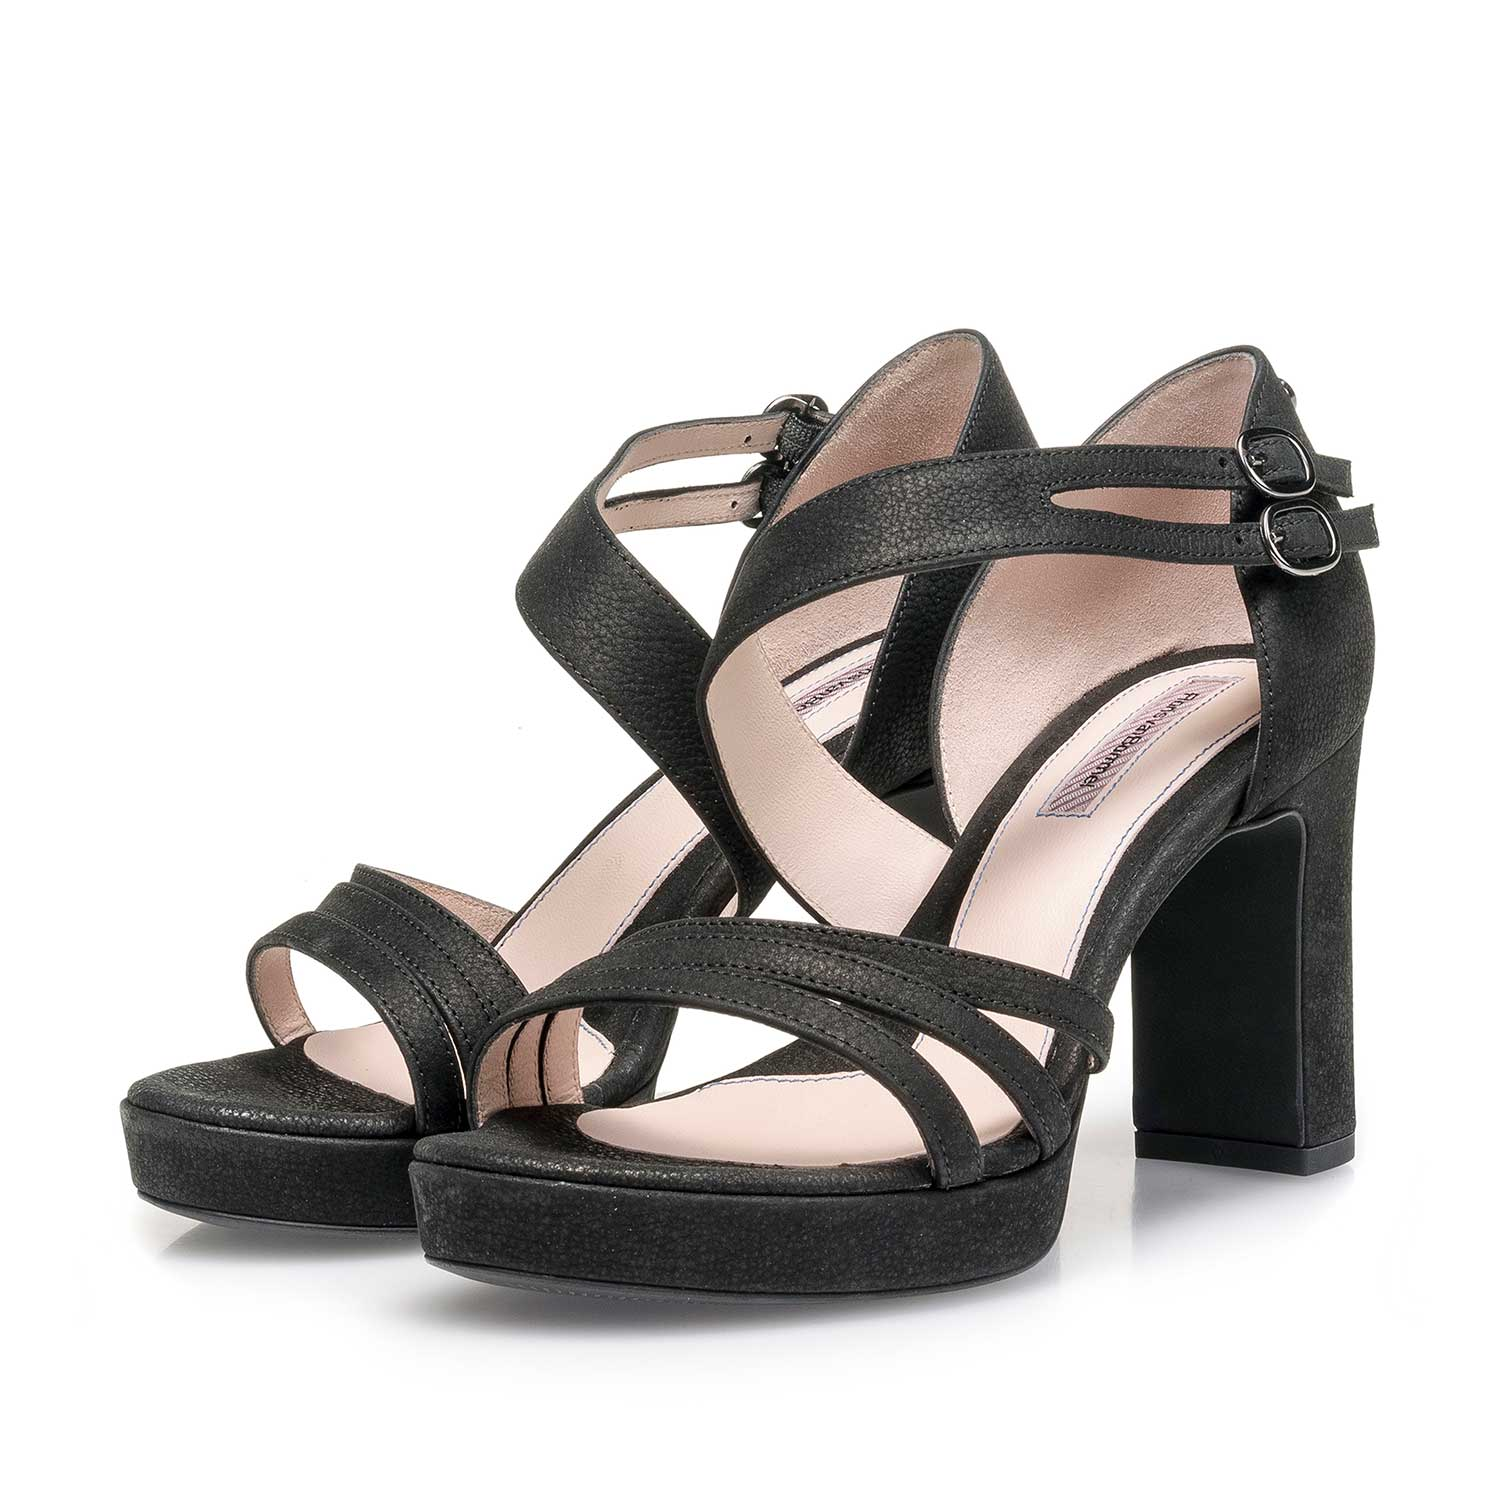 1daf071687f Black leather high-heeled sandal 85902/02 | Floris van Bommel®